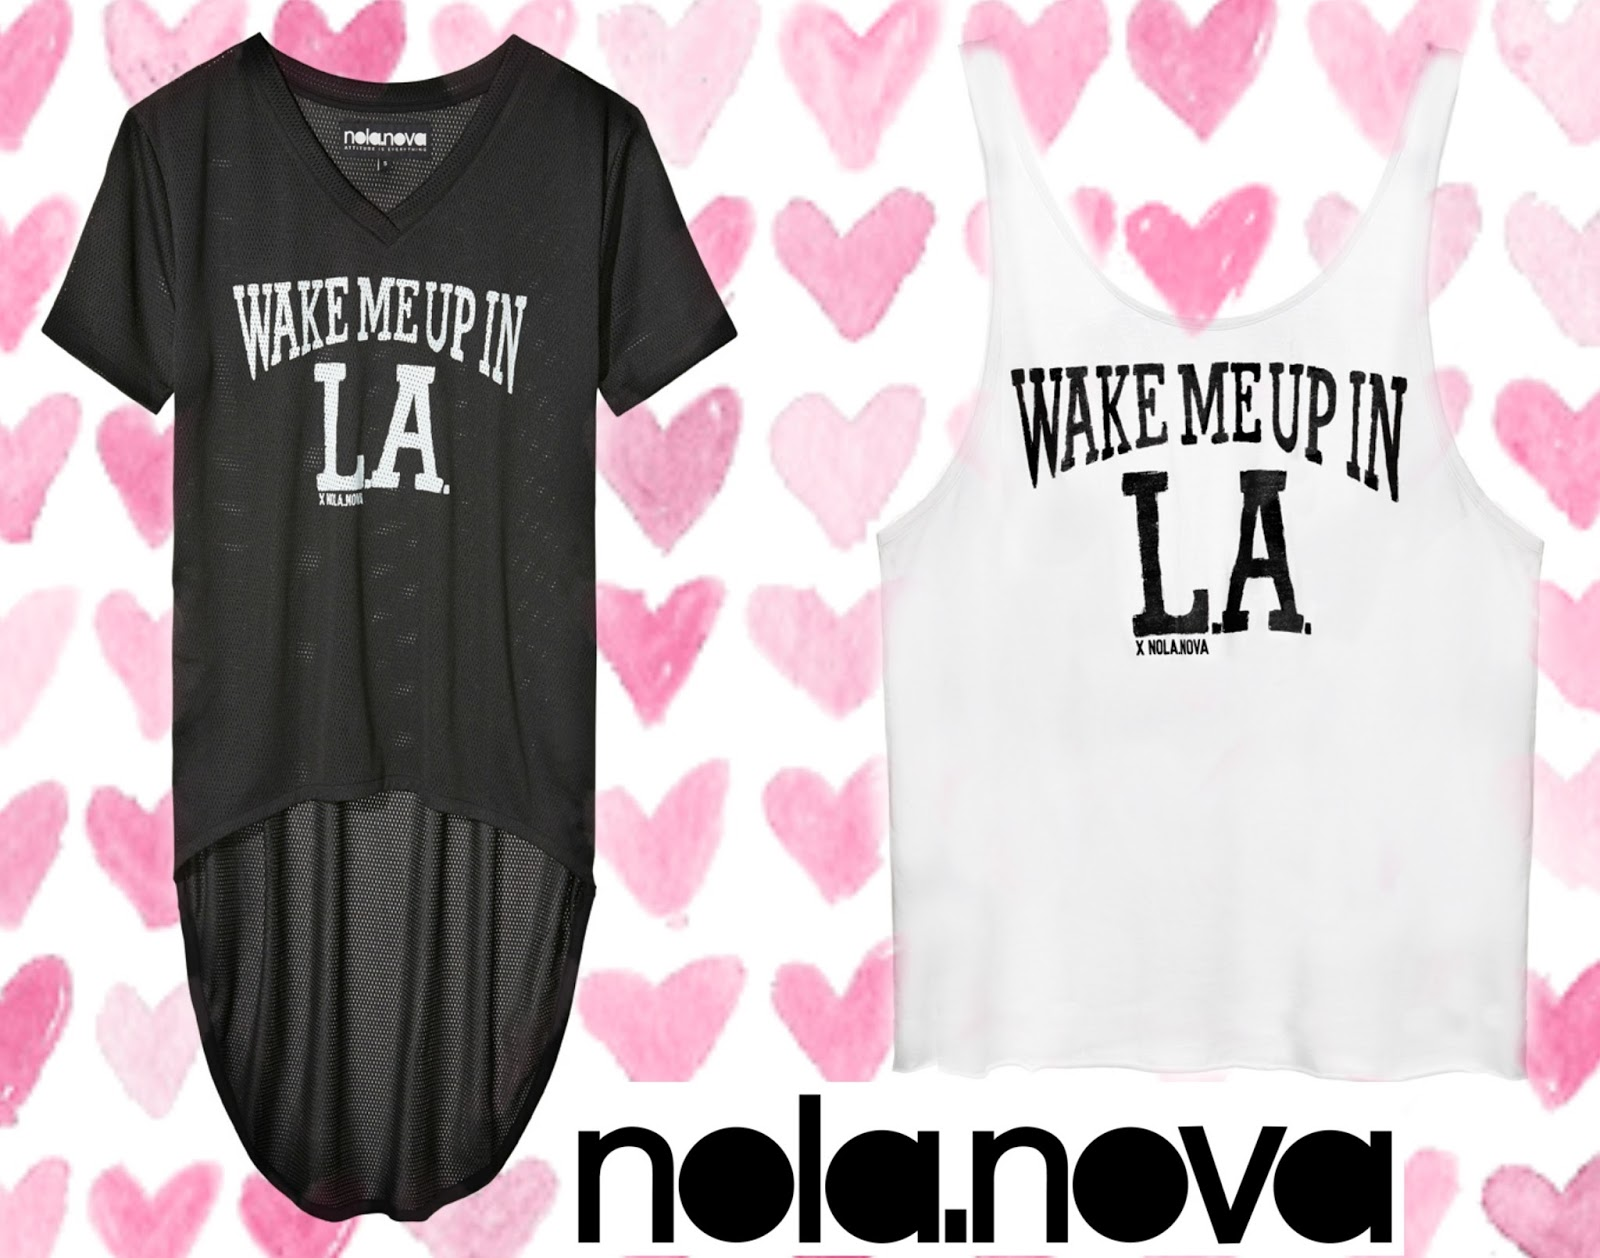 Nola.Nova WAKE ME UP IN L.A Heroine Collection 2014